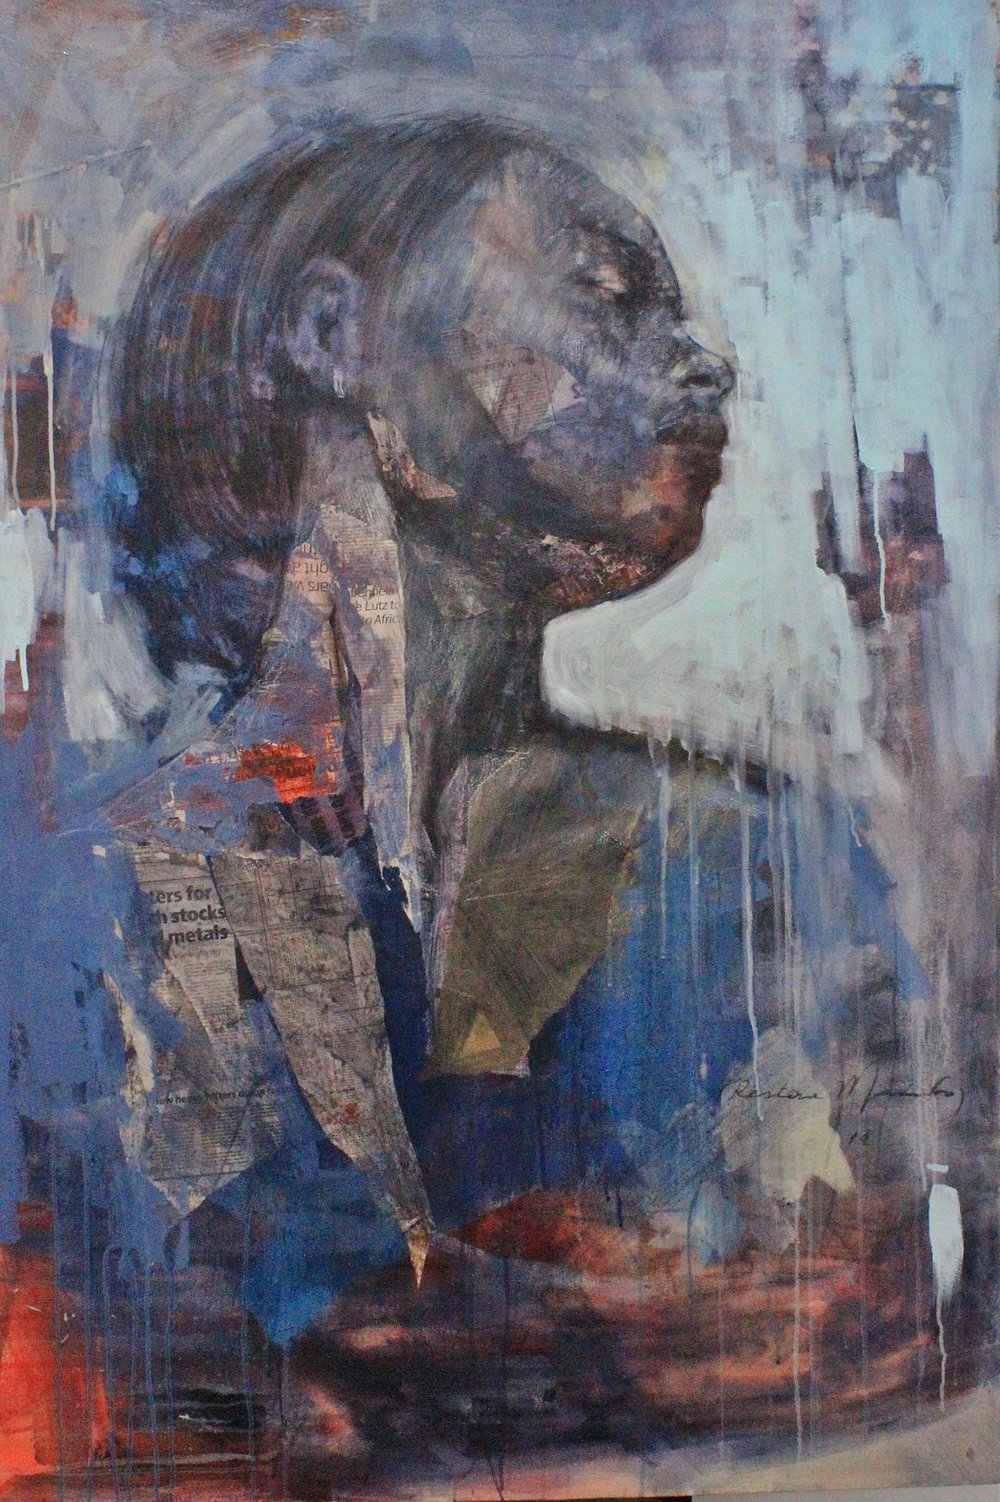 '  Taking Sides '   Restone Maambo   Collage and Mixed Media on Canvas  1000 x 1550 x 40 mm  R 58 000.00 excl. Vat   2018